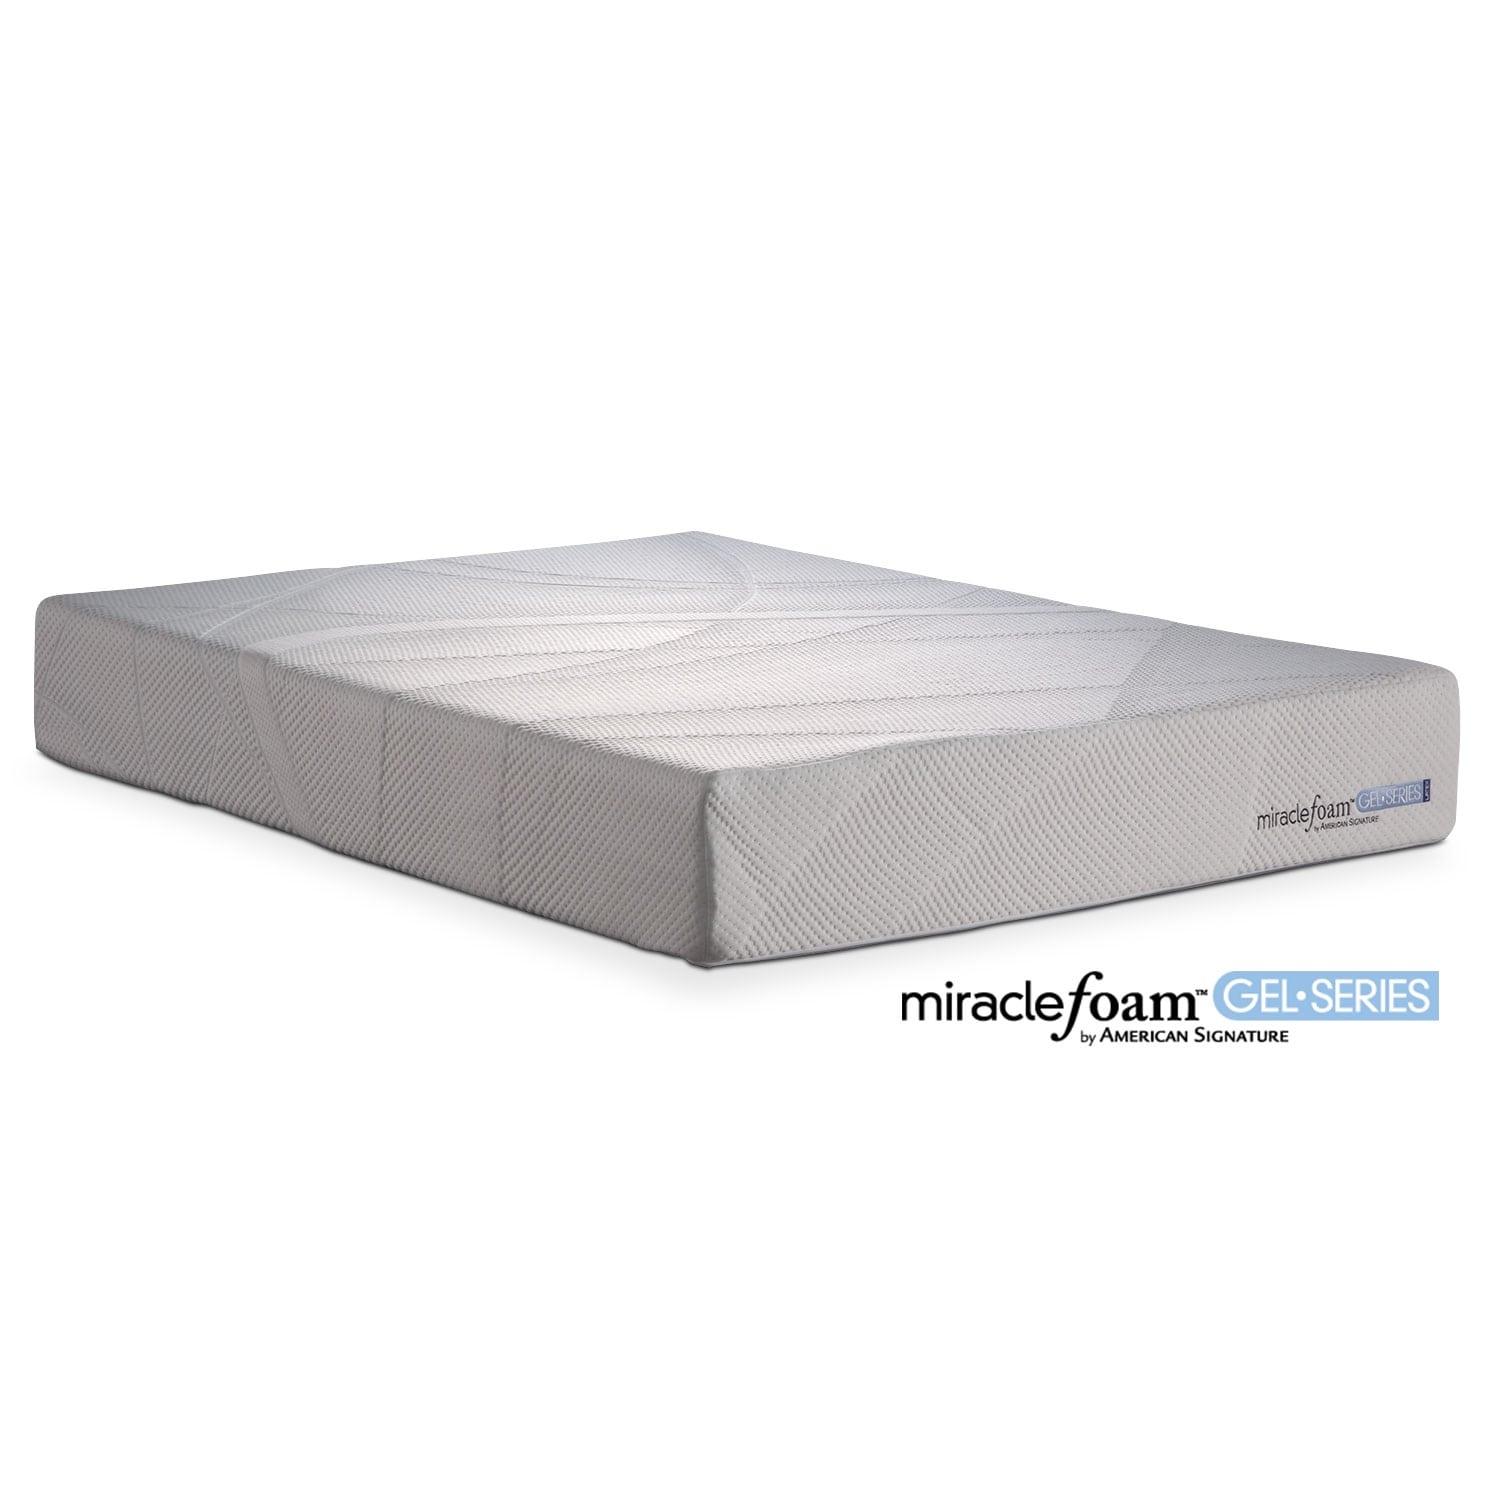 Mattresses and Bedding - Invigorate II Queen Mattress